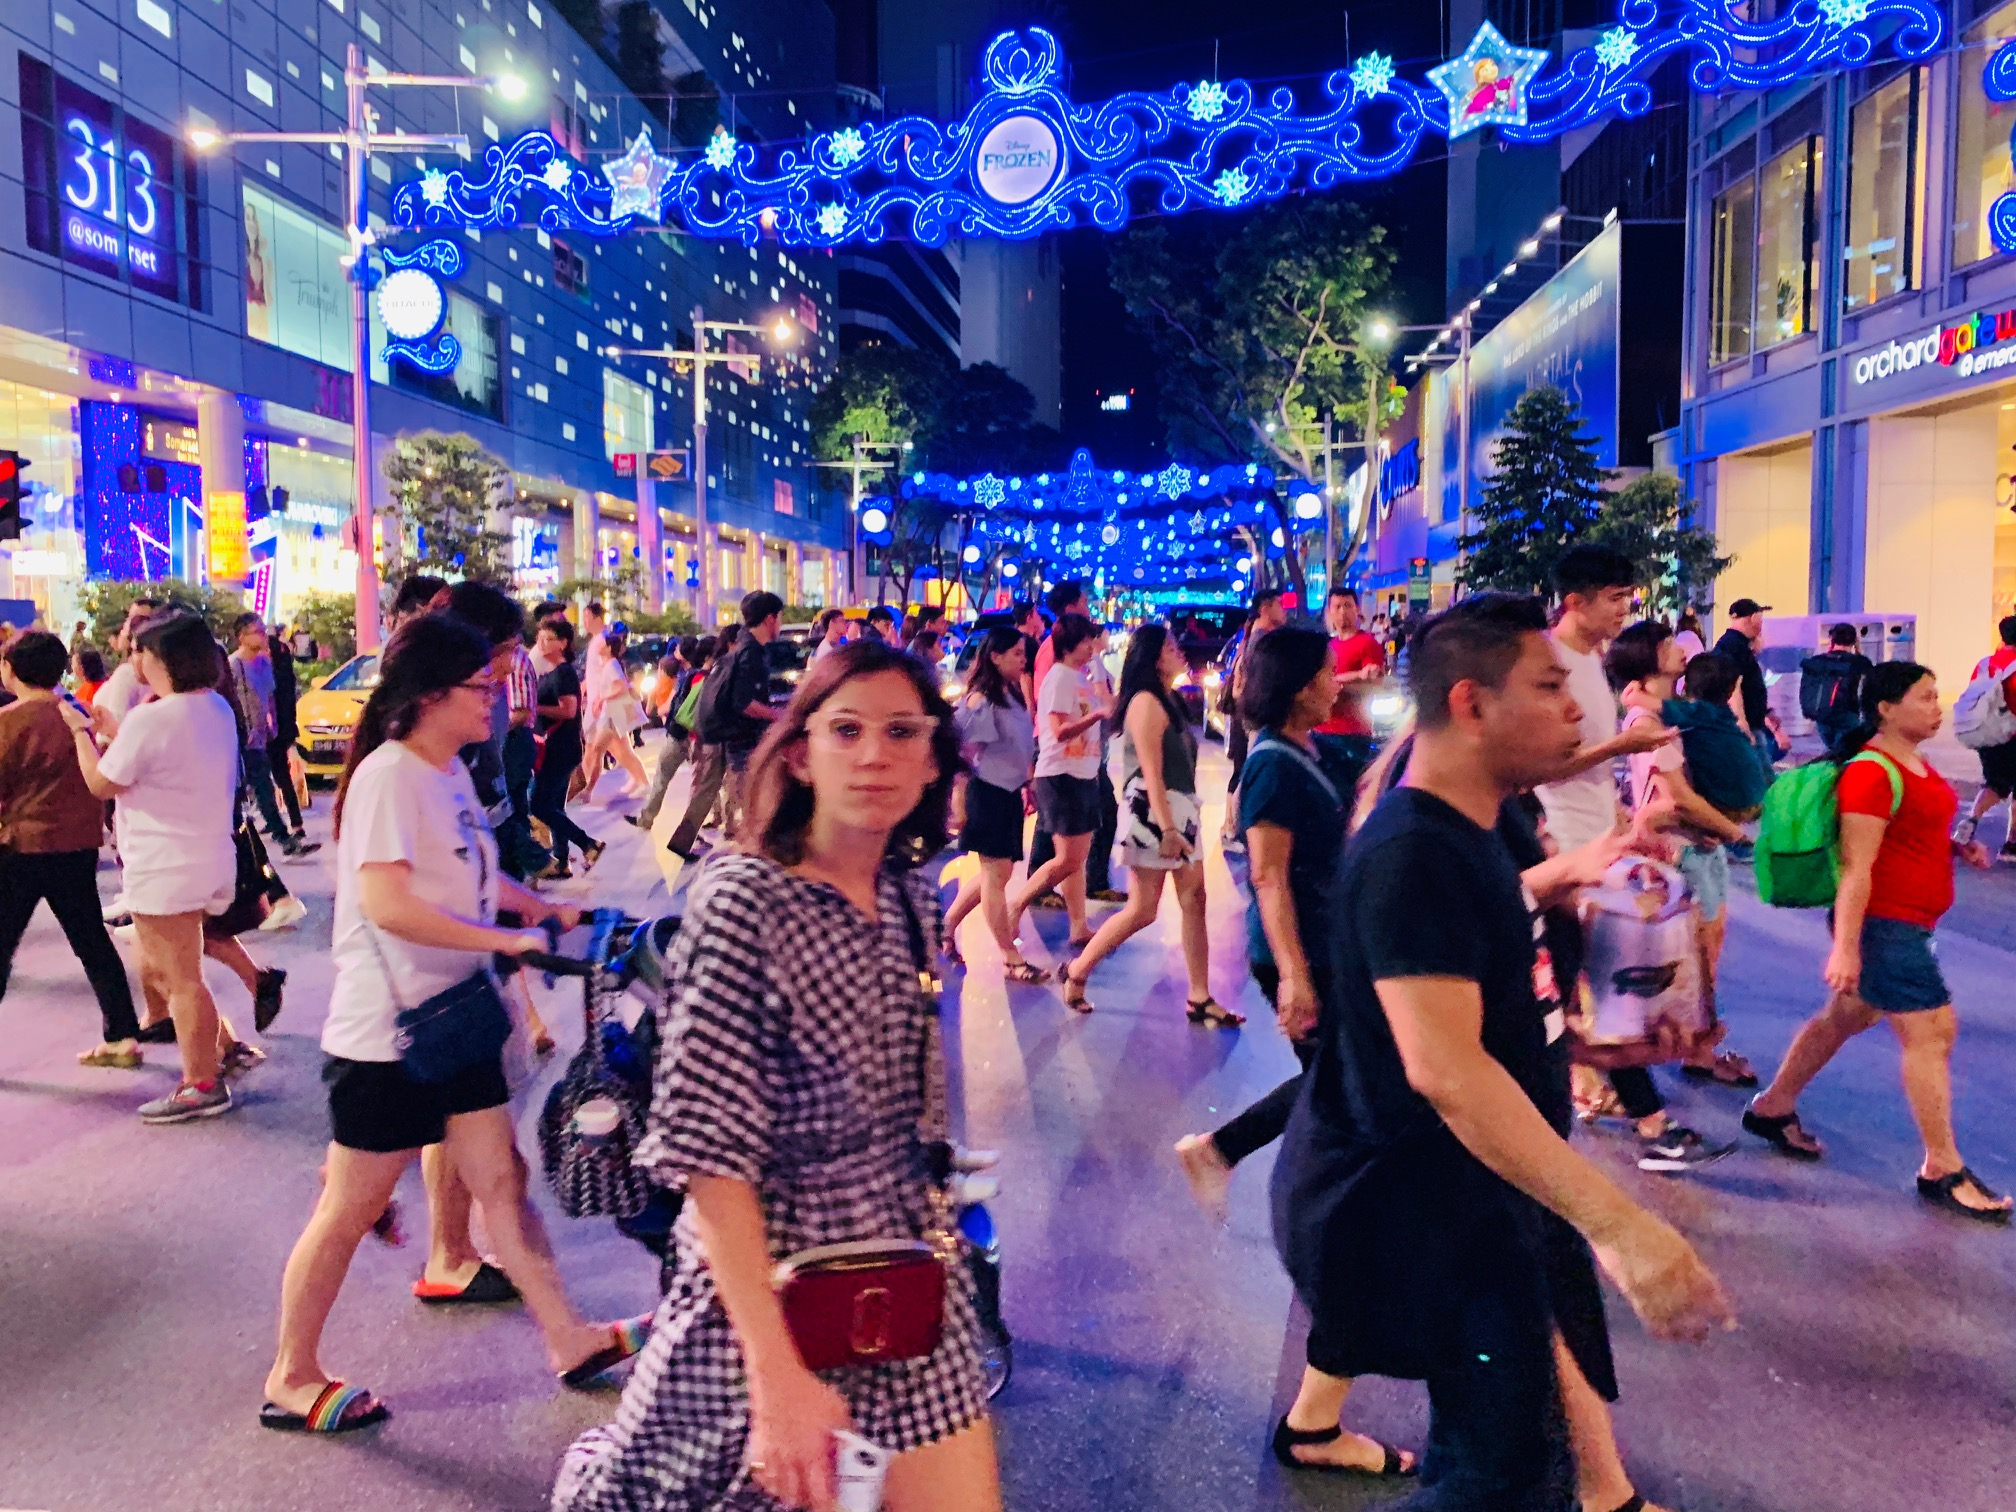 24hrs in Singapore - Renown as a gateway to many other countries in South East Asia, Singapore is a city of abundance, luxury and cleanliness. IIf you are just passing by or starting your trip here, find some recommendations from the TCB team on what to do and where to eat. All in 24 hours!